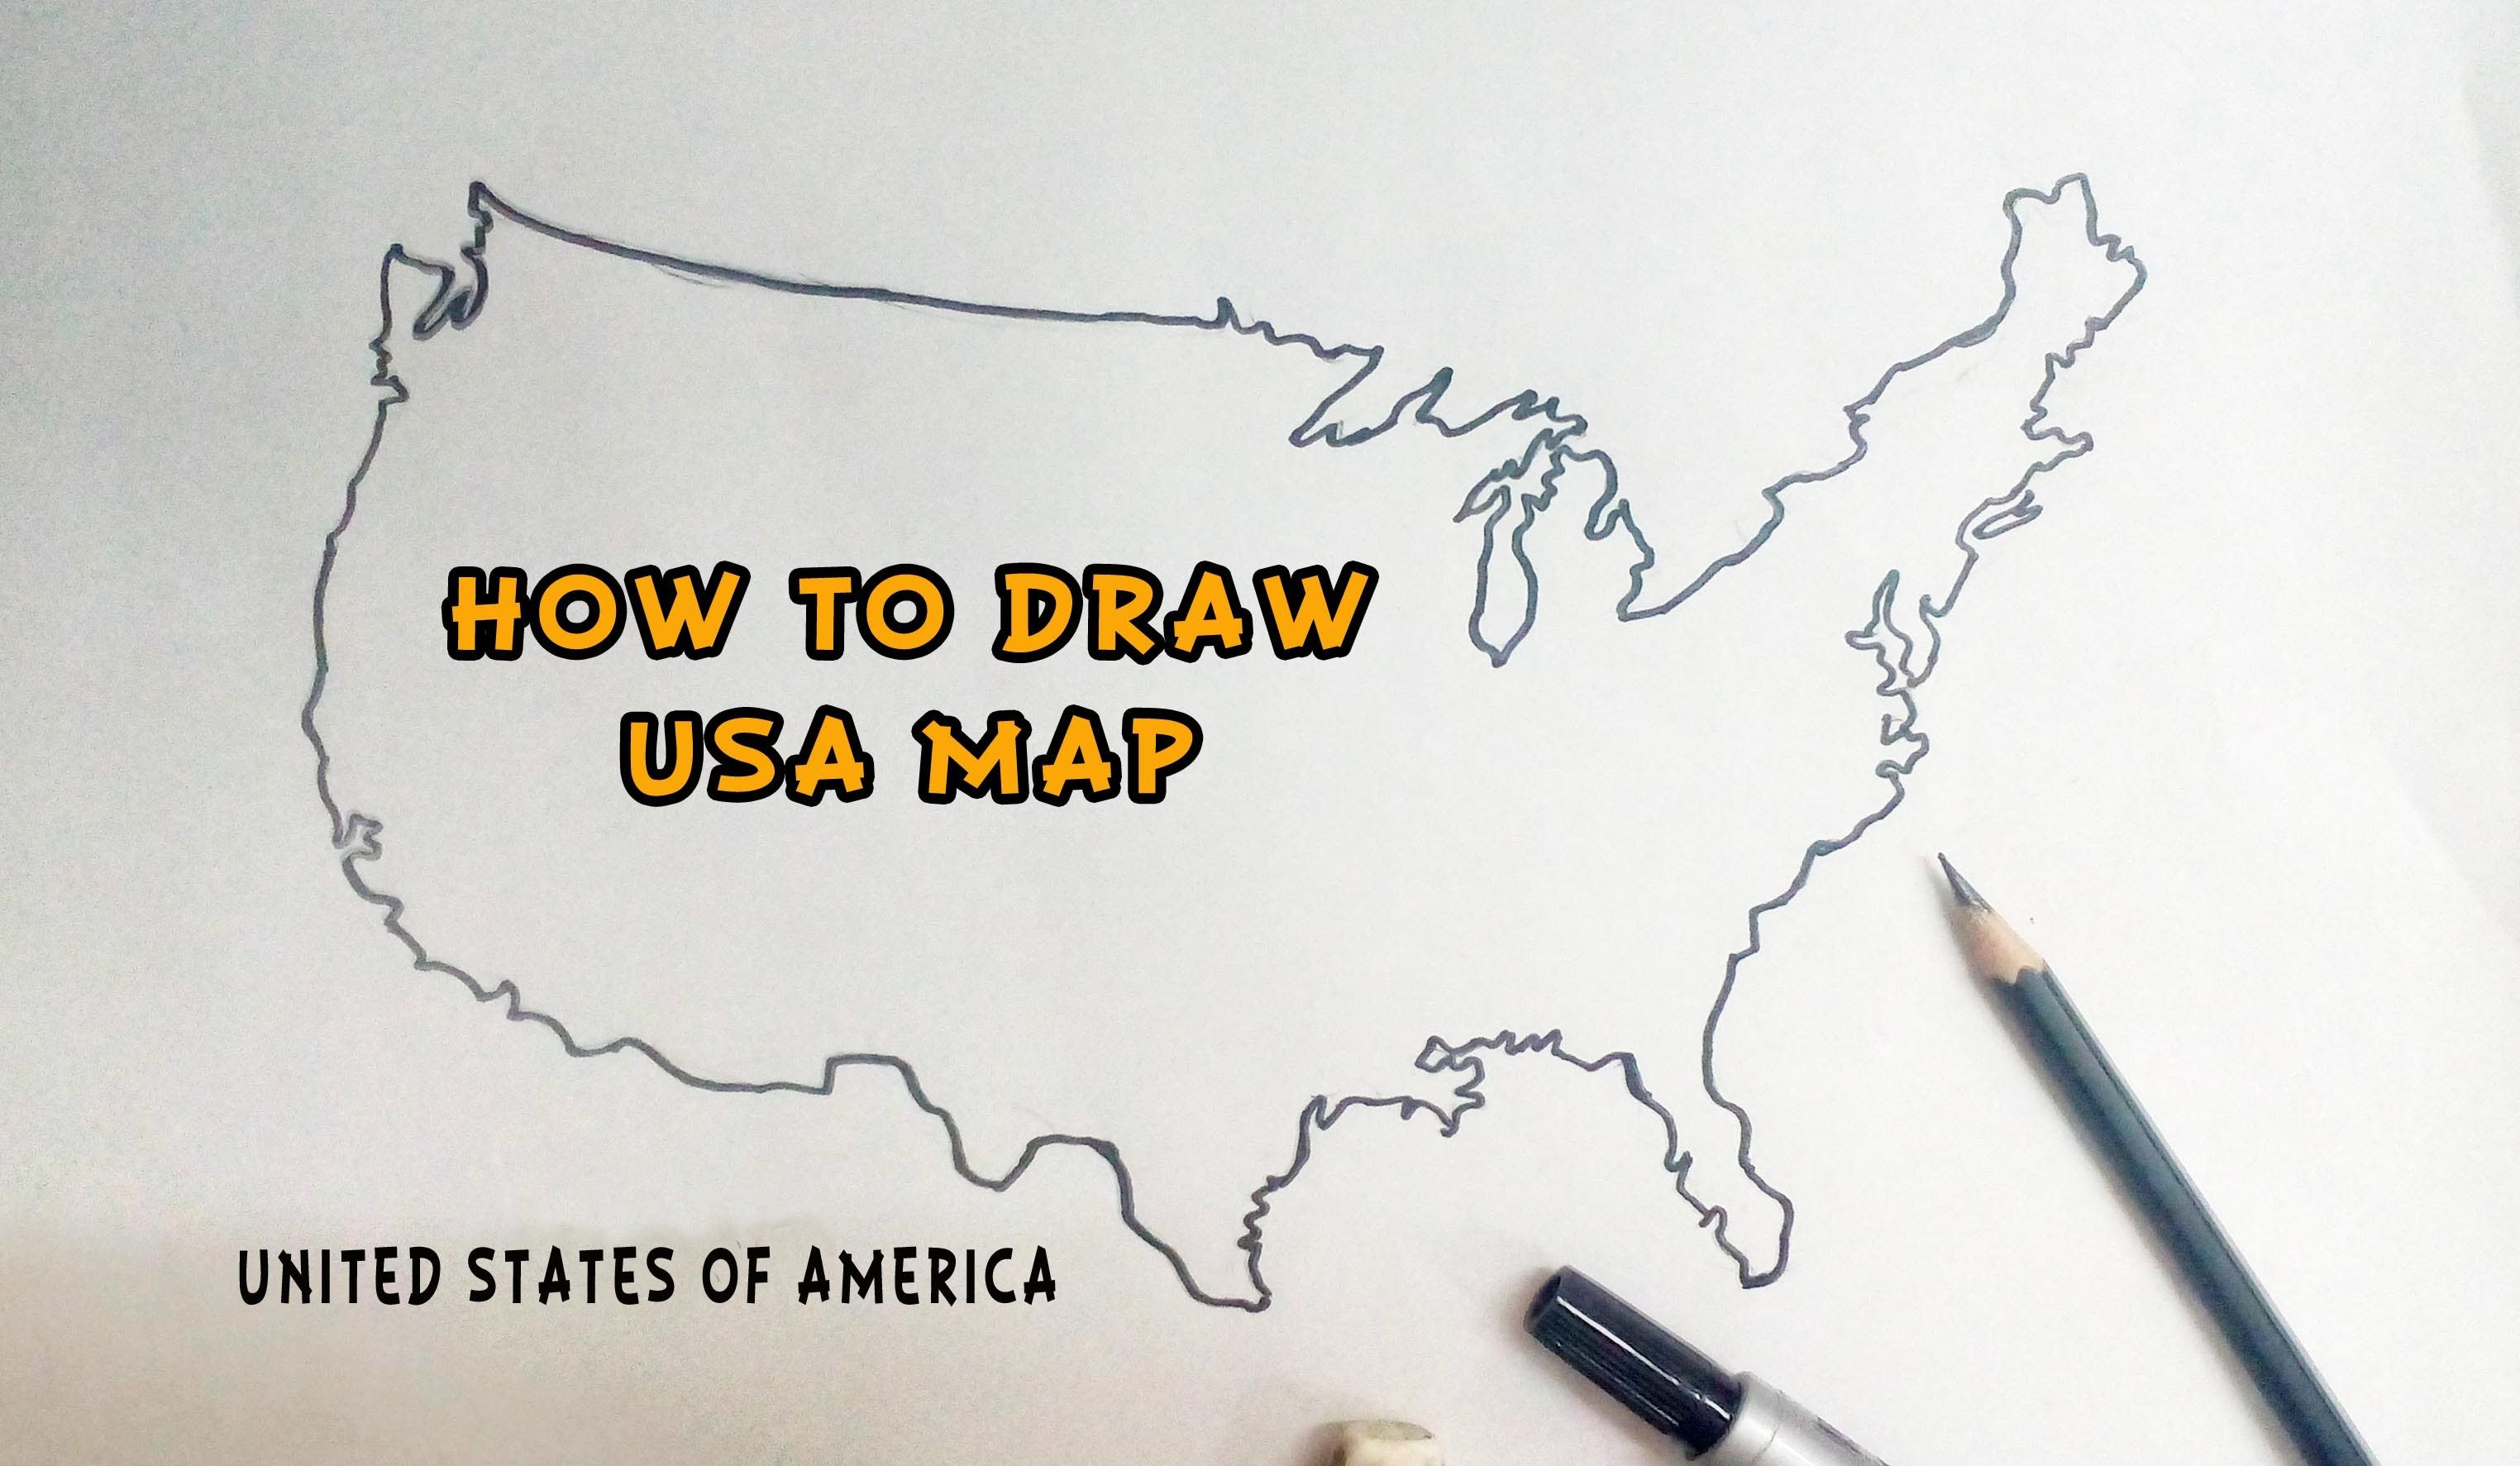 How To Draw Usa Map.How To Draw United States Of America Usa Map At Home W The